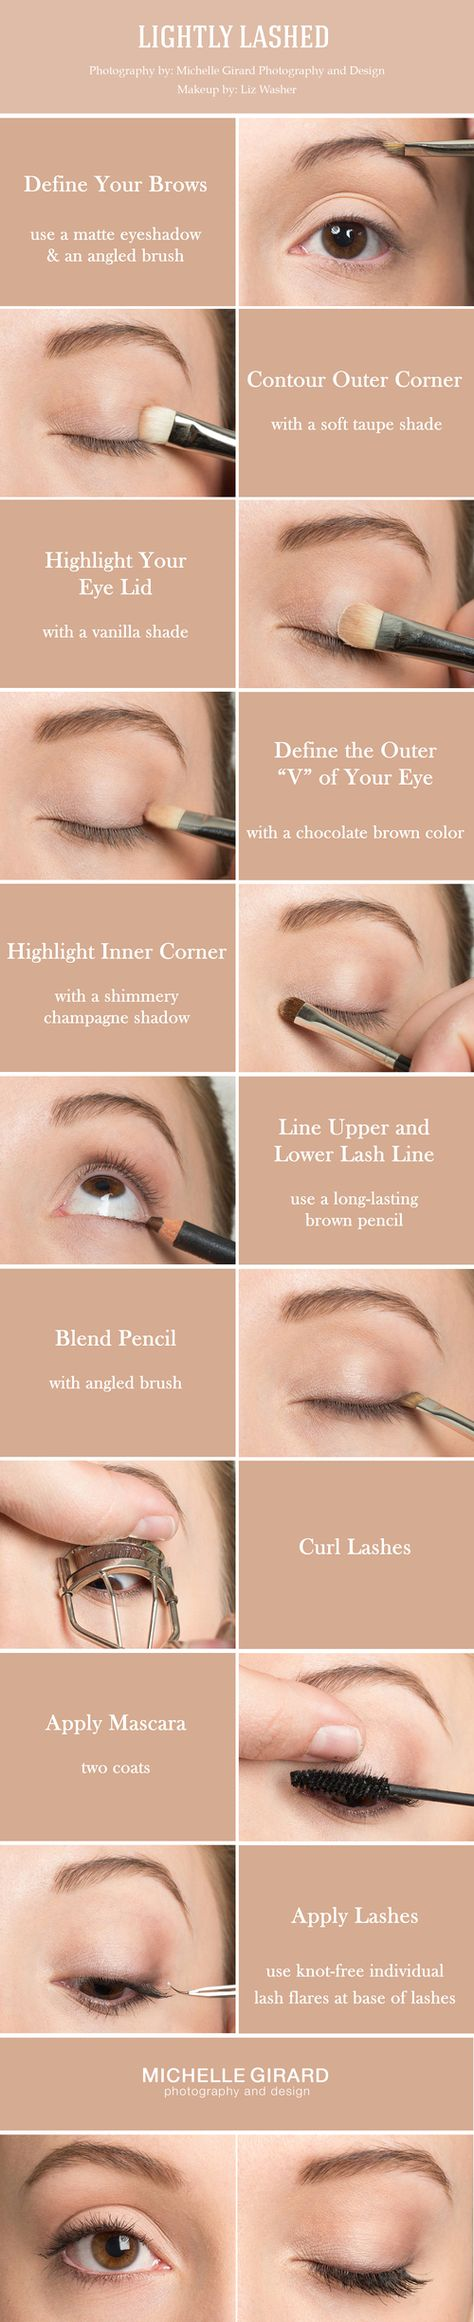 Clean, Natural Makeup Tutorial with Lovely Lashes :: Inspired by Shailene Woodley :: As seen on Style Me Pretty :: Liz Washer Makeup :: Michelle Girard Photography Design More here....... https://www.youtube.com/watch?v=nbXe3mOcx5g #makeup #makeupartist #makeupbrushes #eye